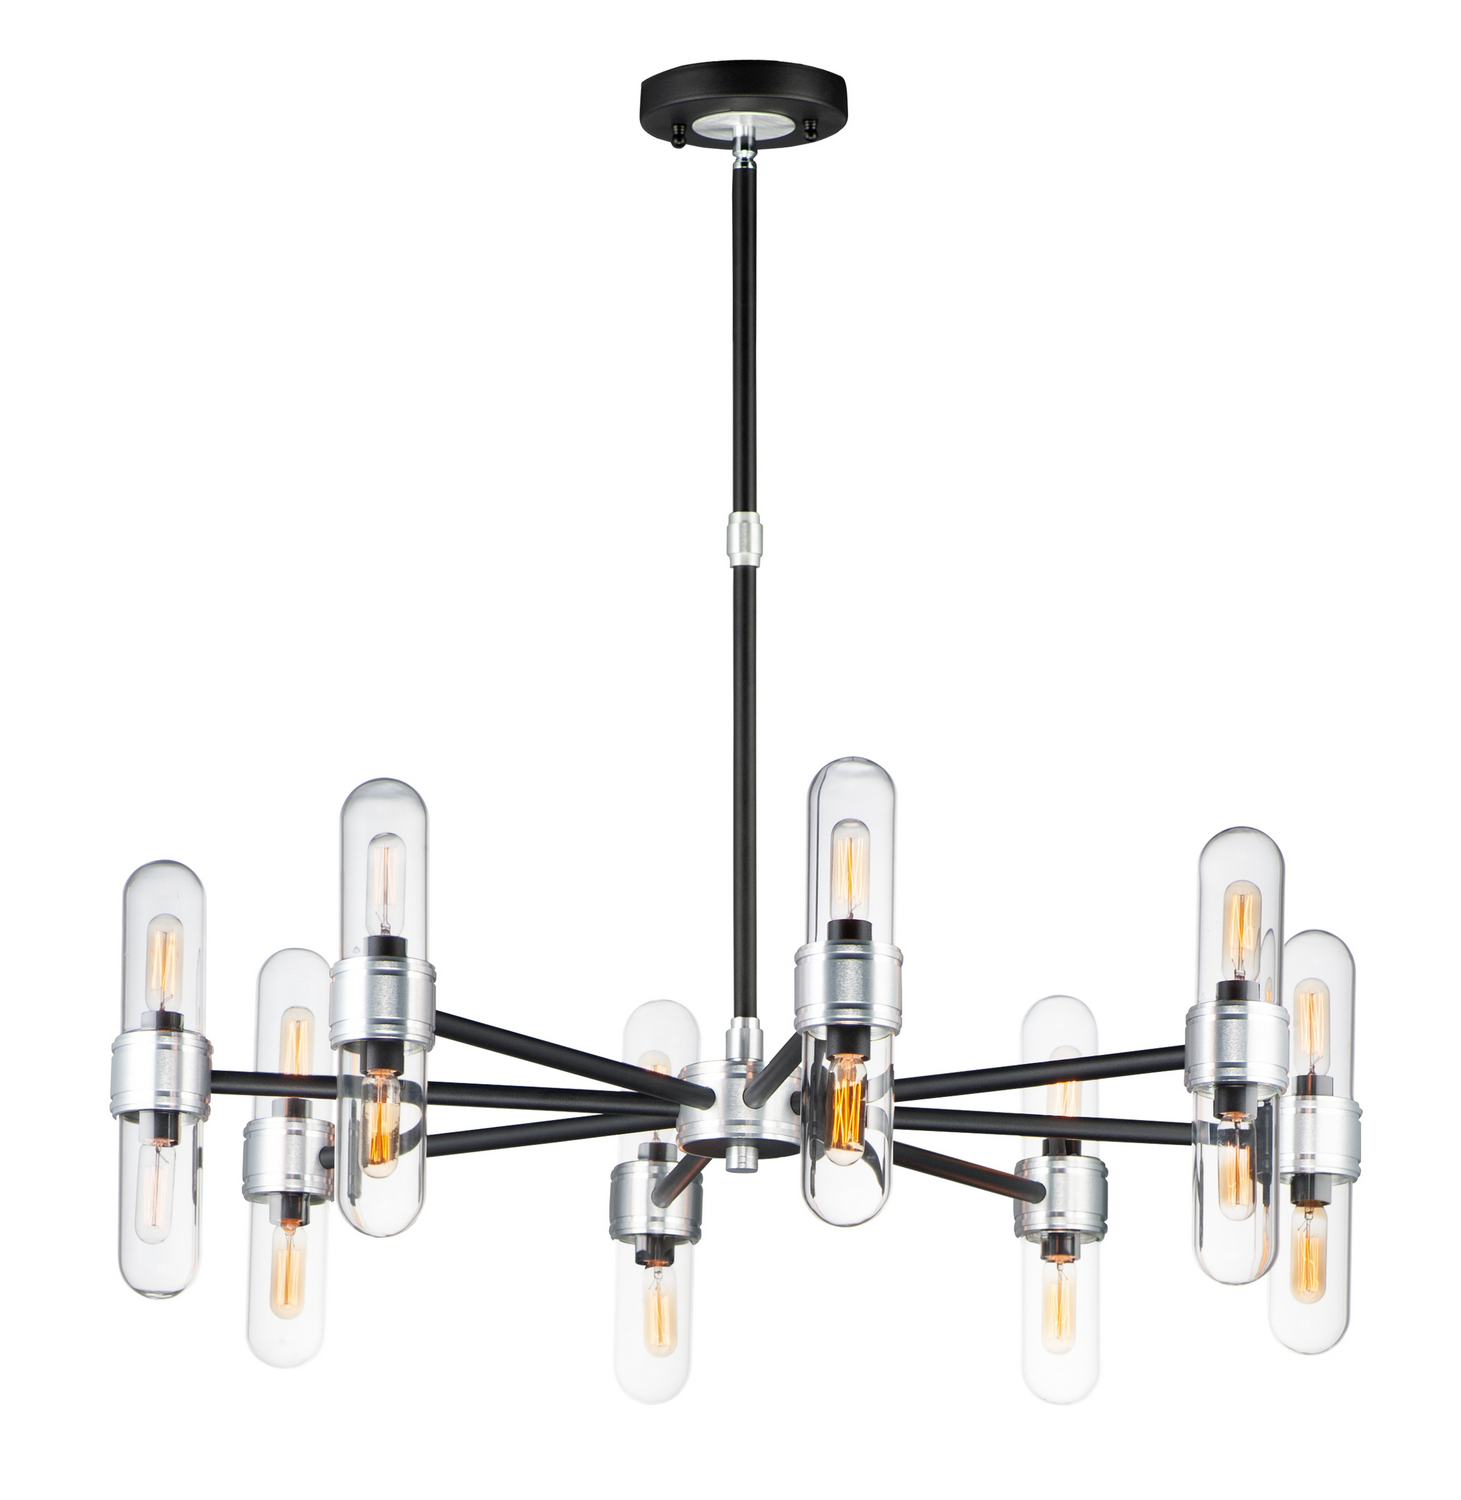 16 Light Chandelier from the Dual collection by Maxim 21708CLBKAL